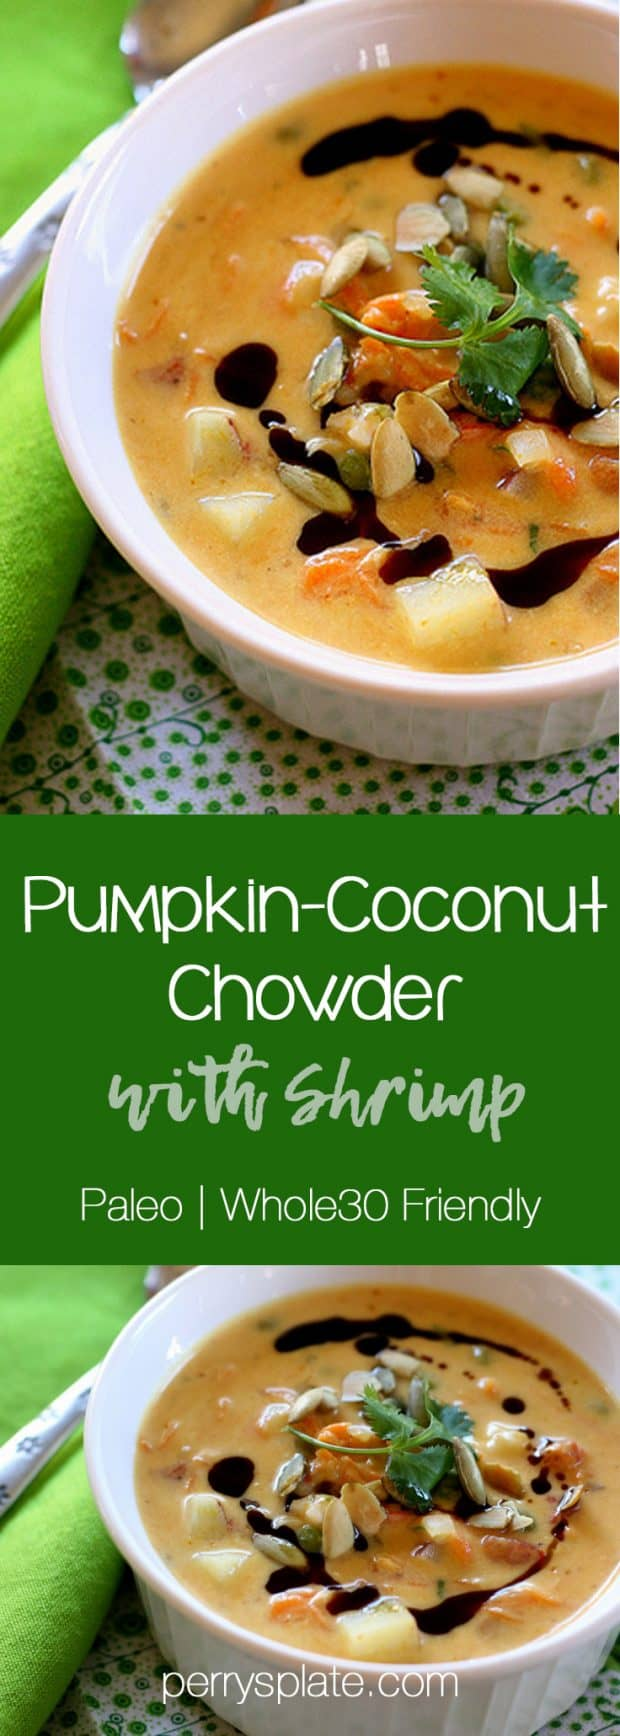 Pumpkin-Coconut Chowder with Shrimp | Whole30 recipes | paleo recipes | soup recipes | gluten-free recipes | perrysplate.com